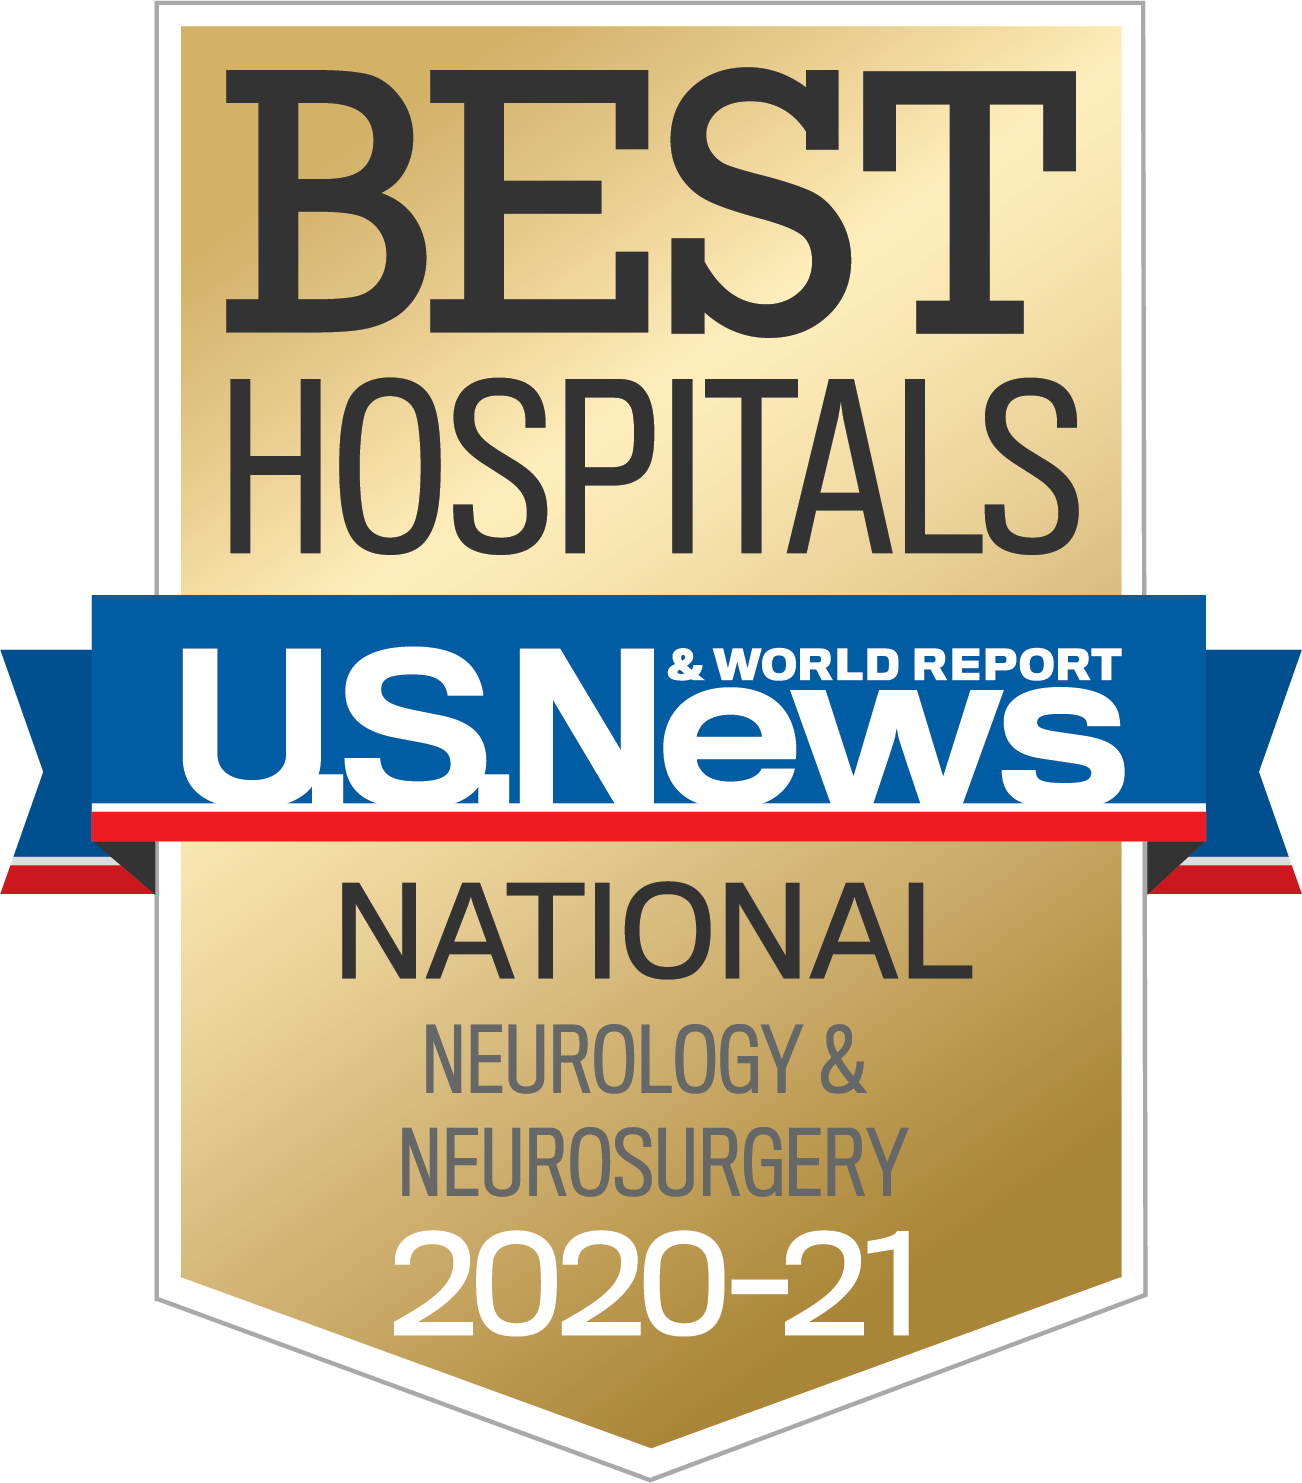 2020 Best Hospitals - Neurology and Neurosurgery